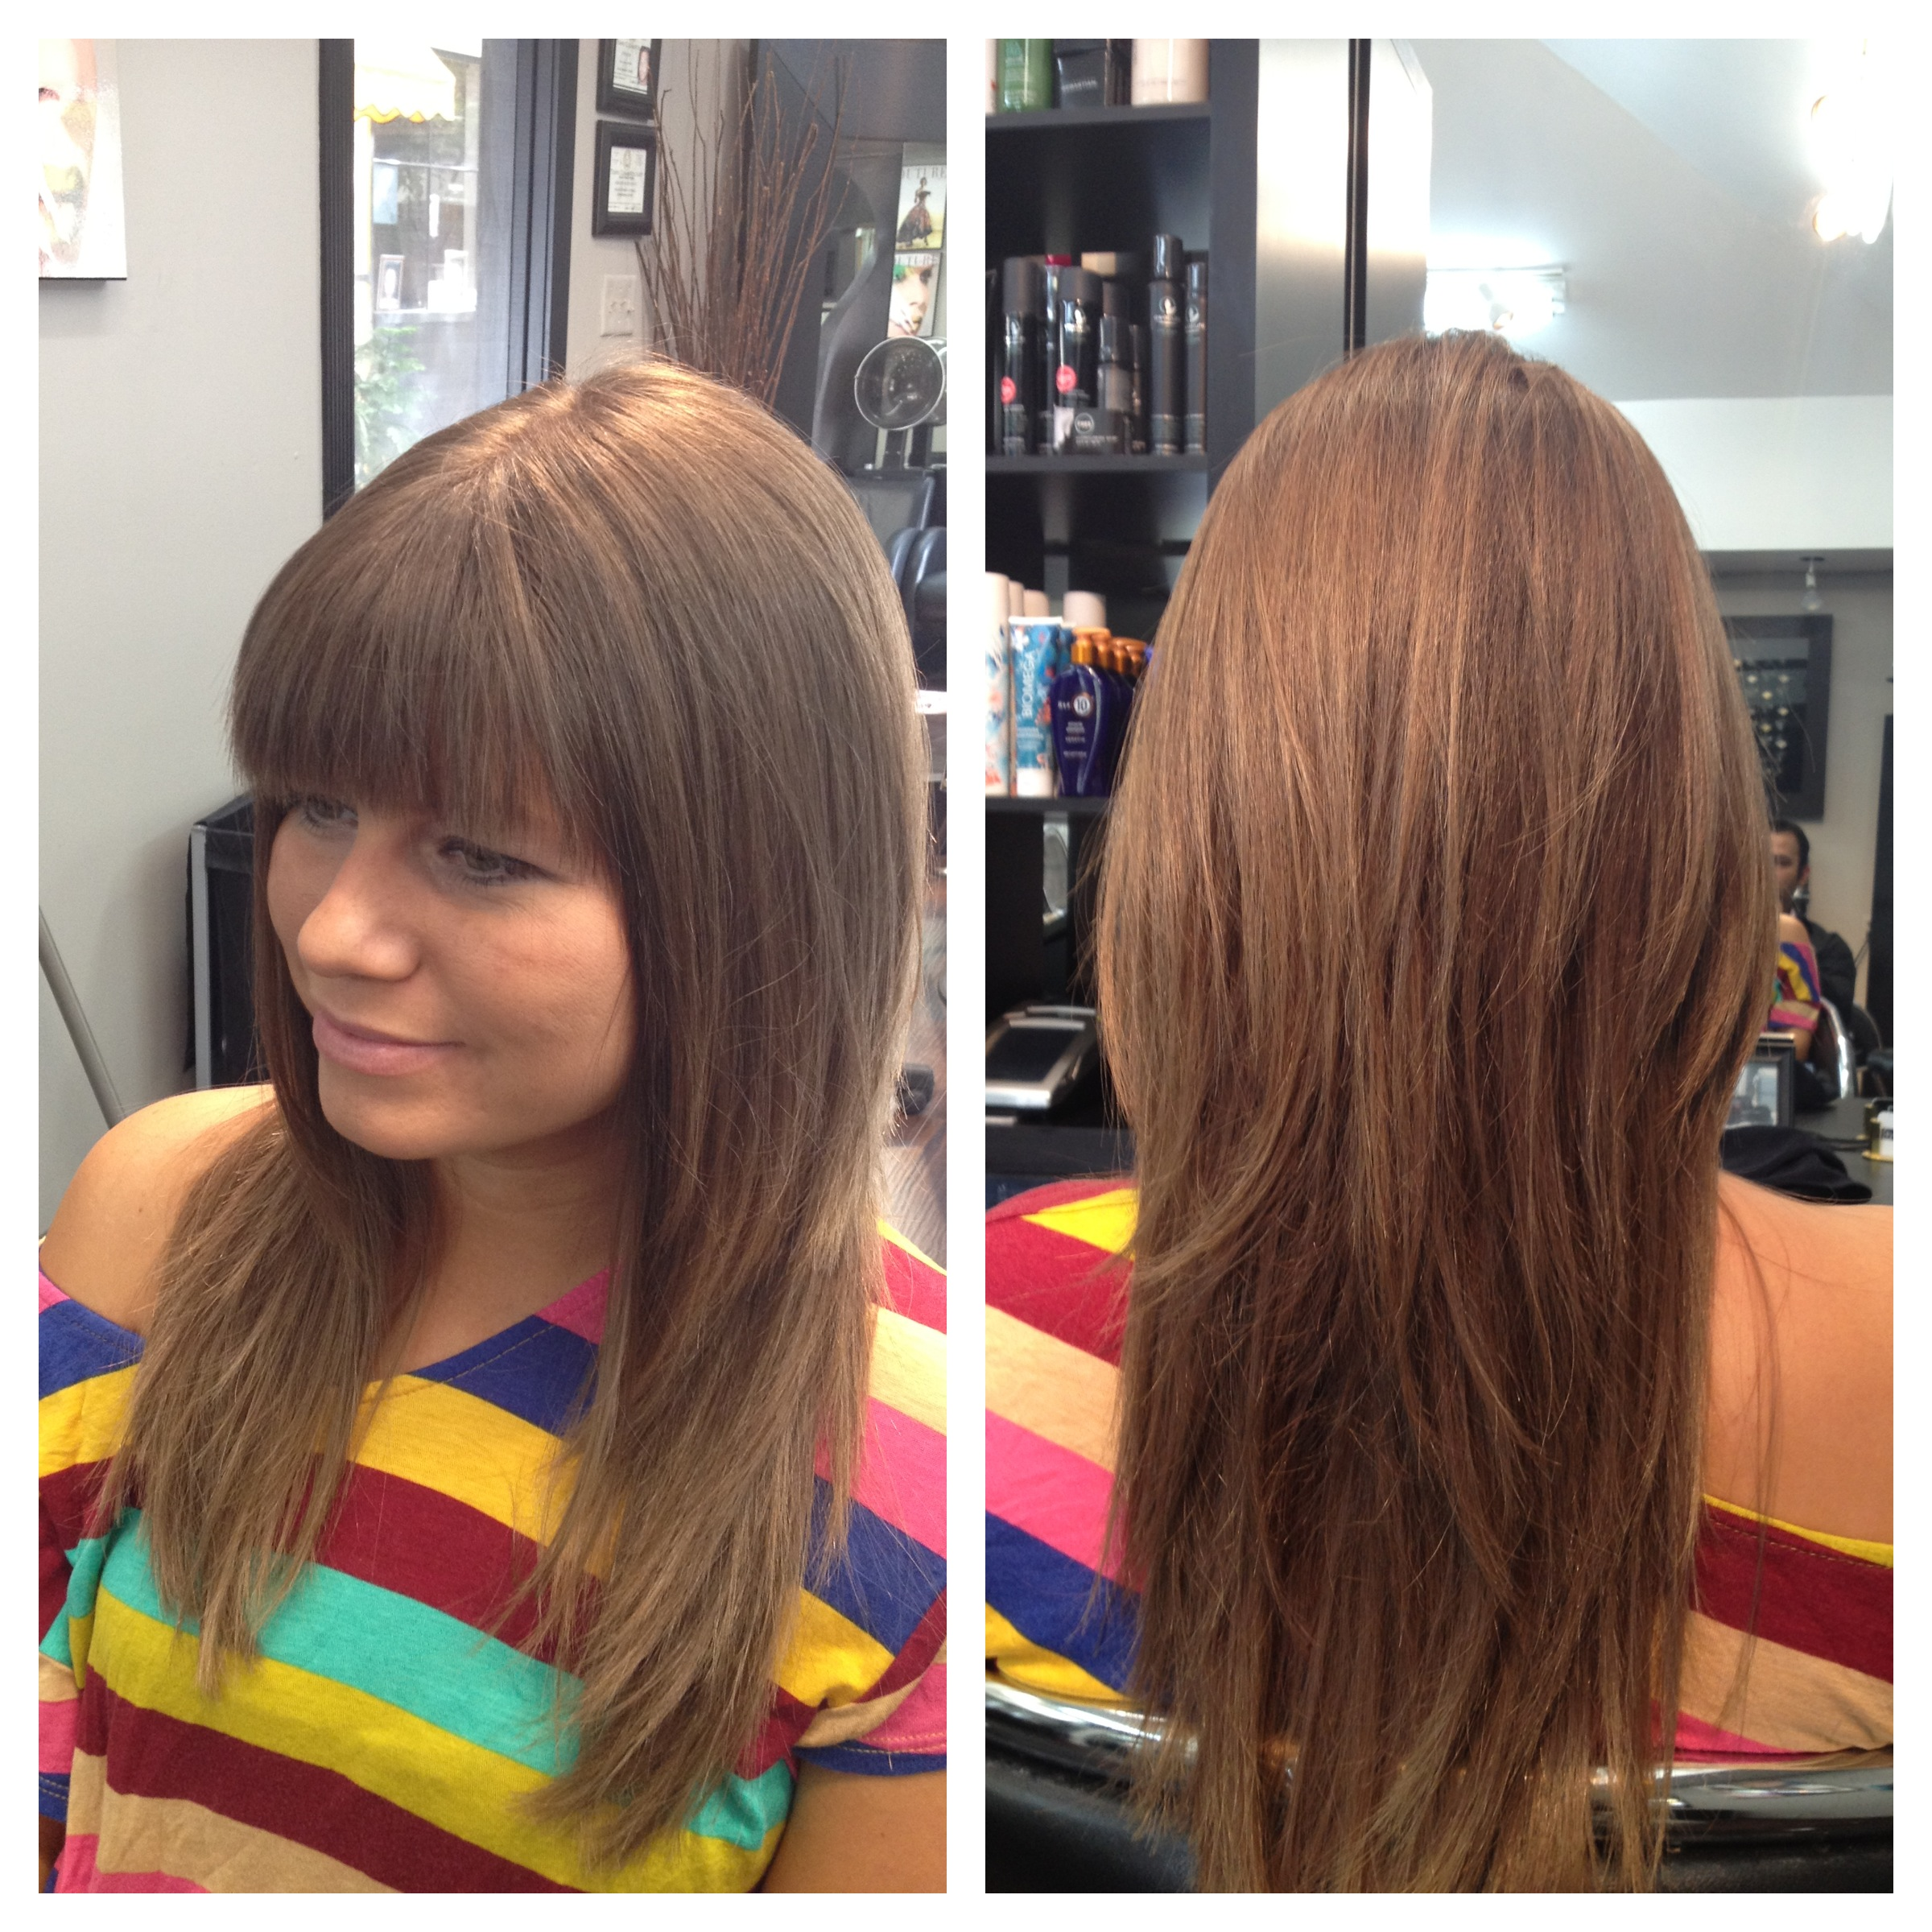 Hair Color Salon Houston with Clip In Extensions Human Hair Full Head ...